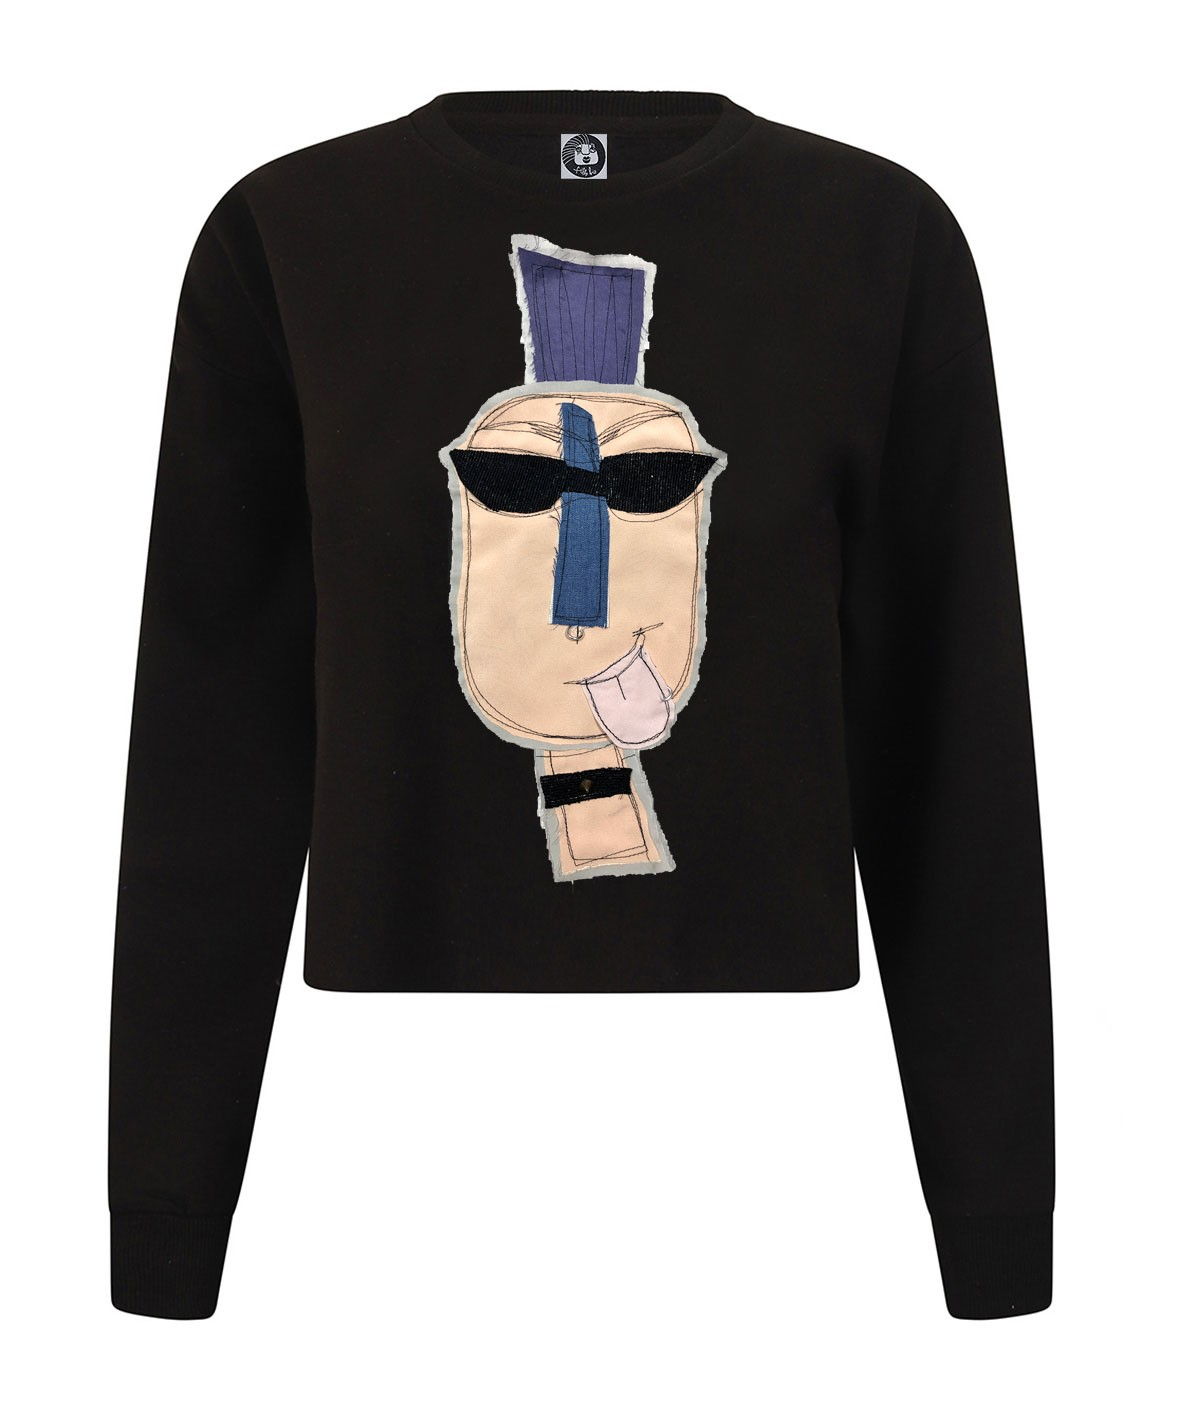 Punk man - crop sweatshirt